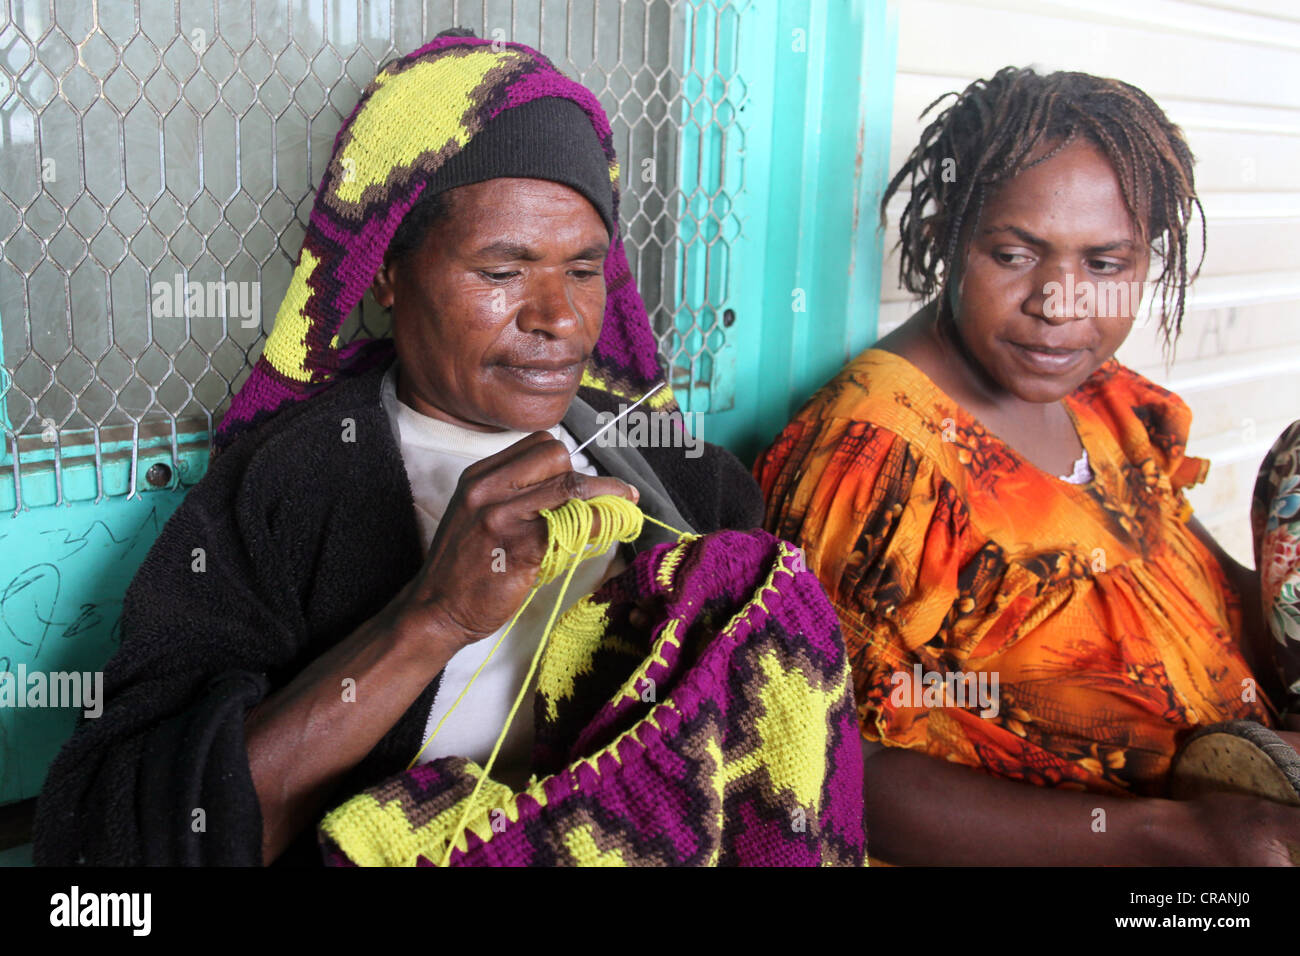 Woman knits a traditional bilum net, Goroka, Papua New Guinea - Stock Image